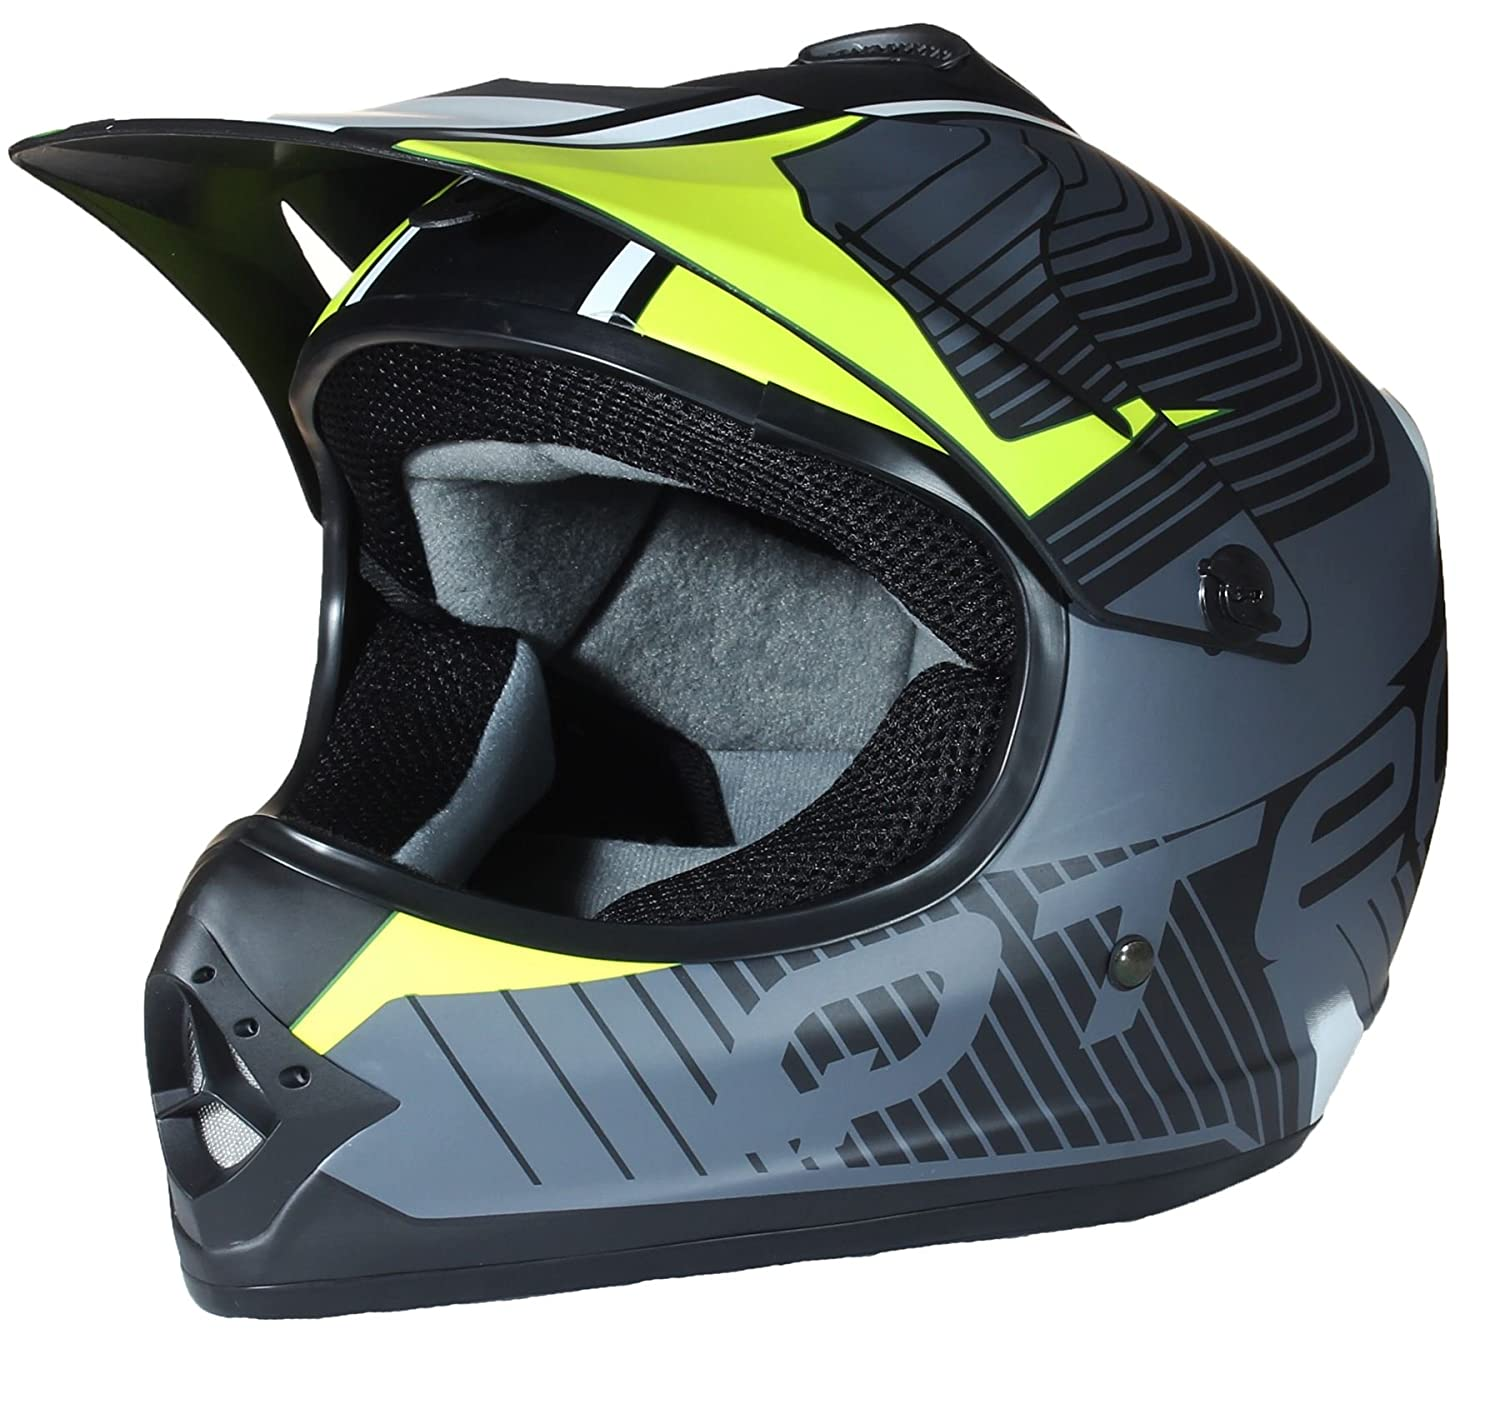 53-54cm S Giallo Casco MOTOCROSS per Bambino Moto Cross Enduro ATV MX BMX Quad Nero Opaco